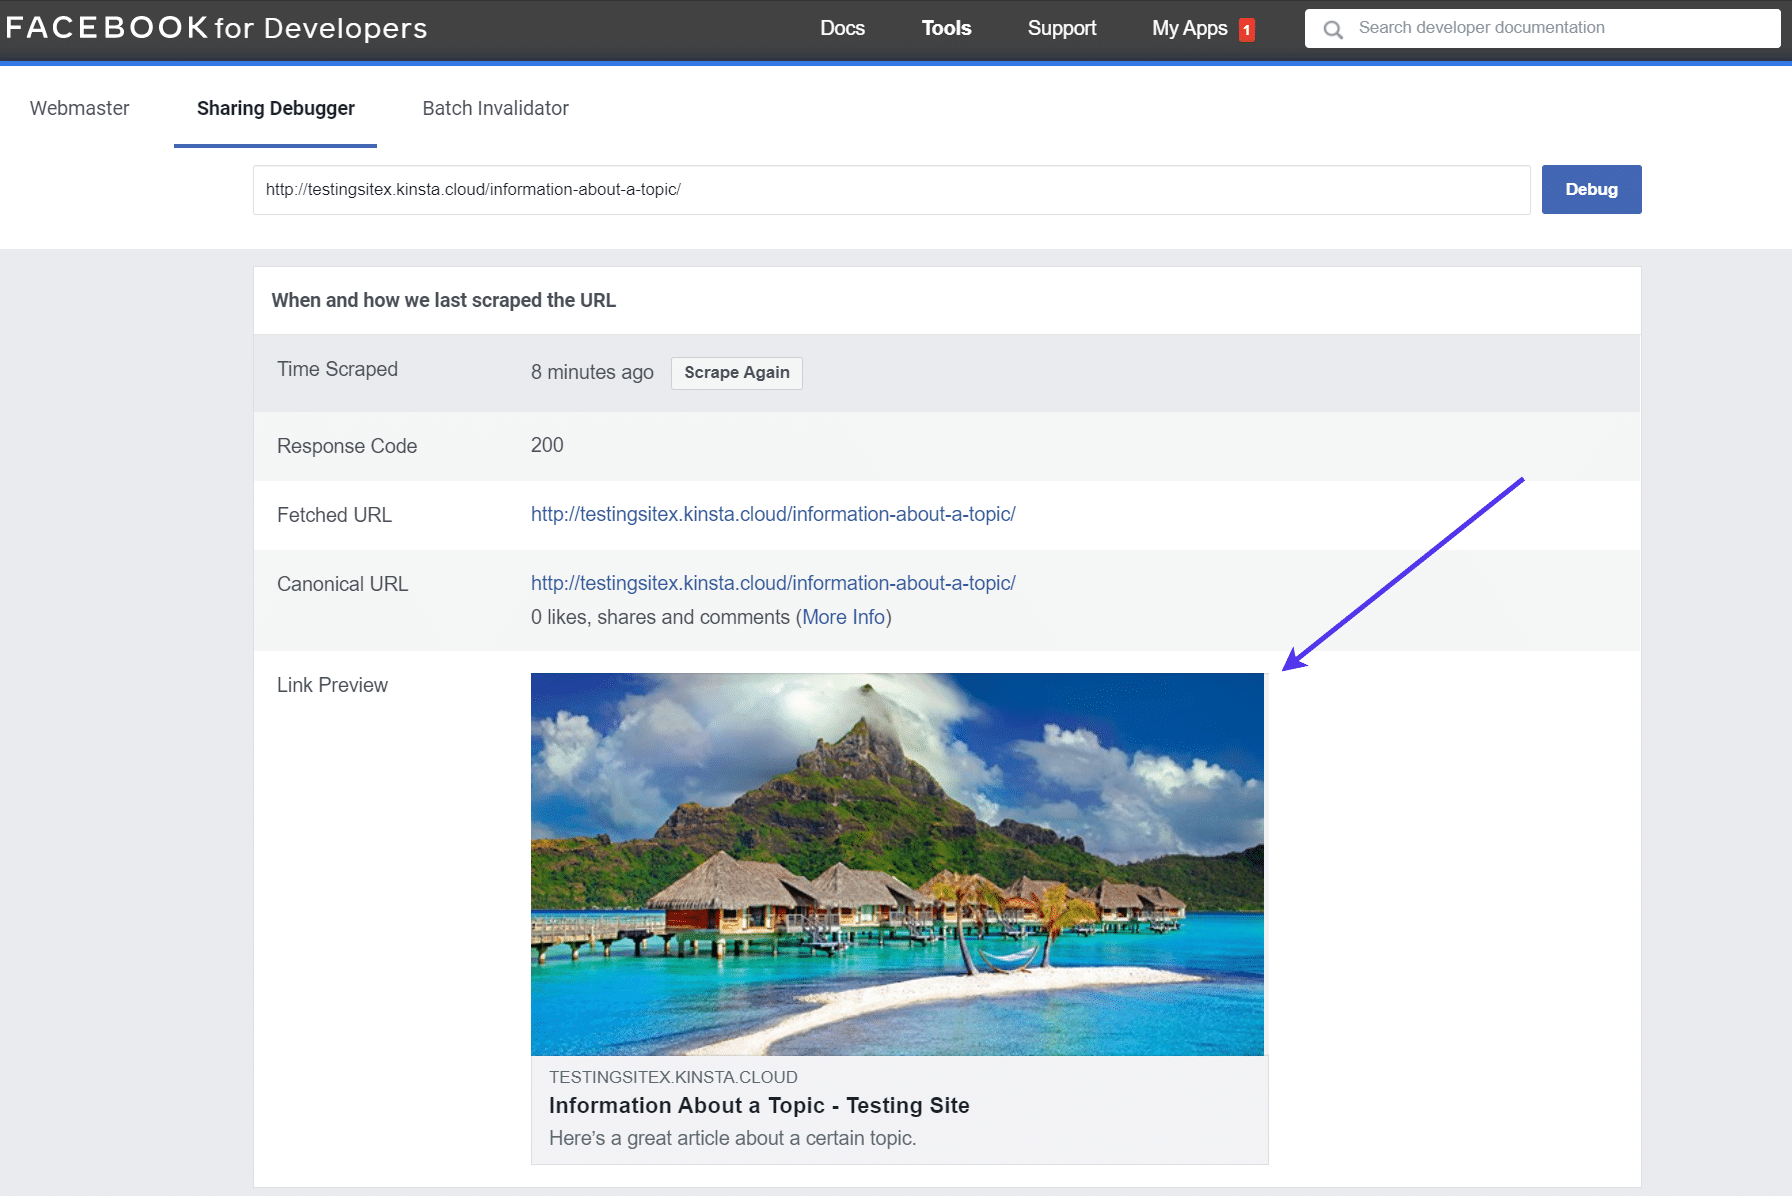 Checking the 'Link Preview' of a URL on Facebook